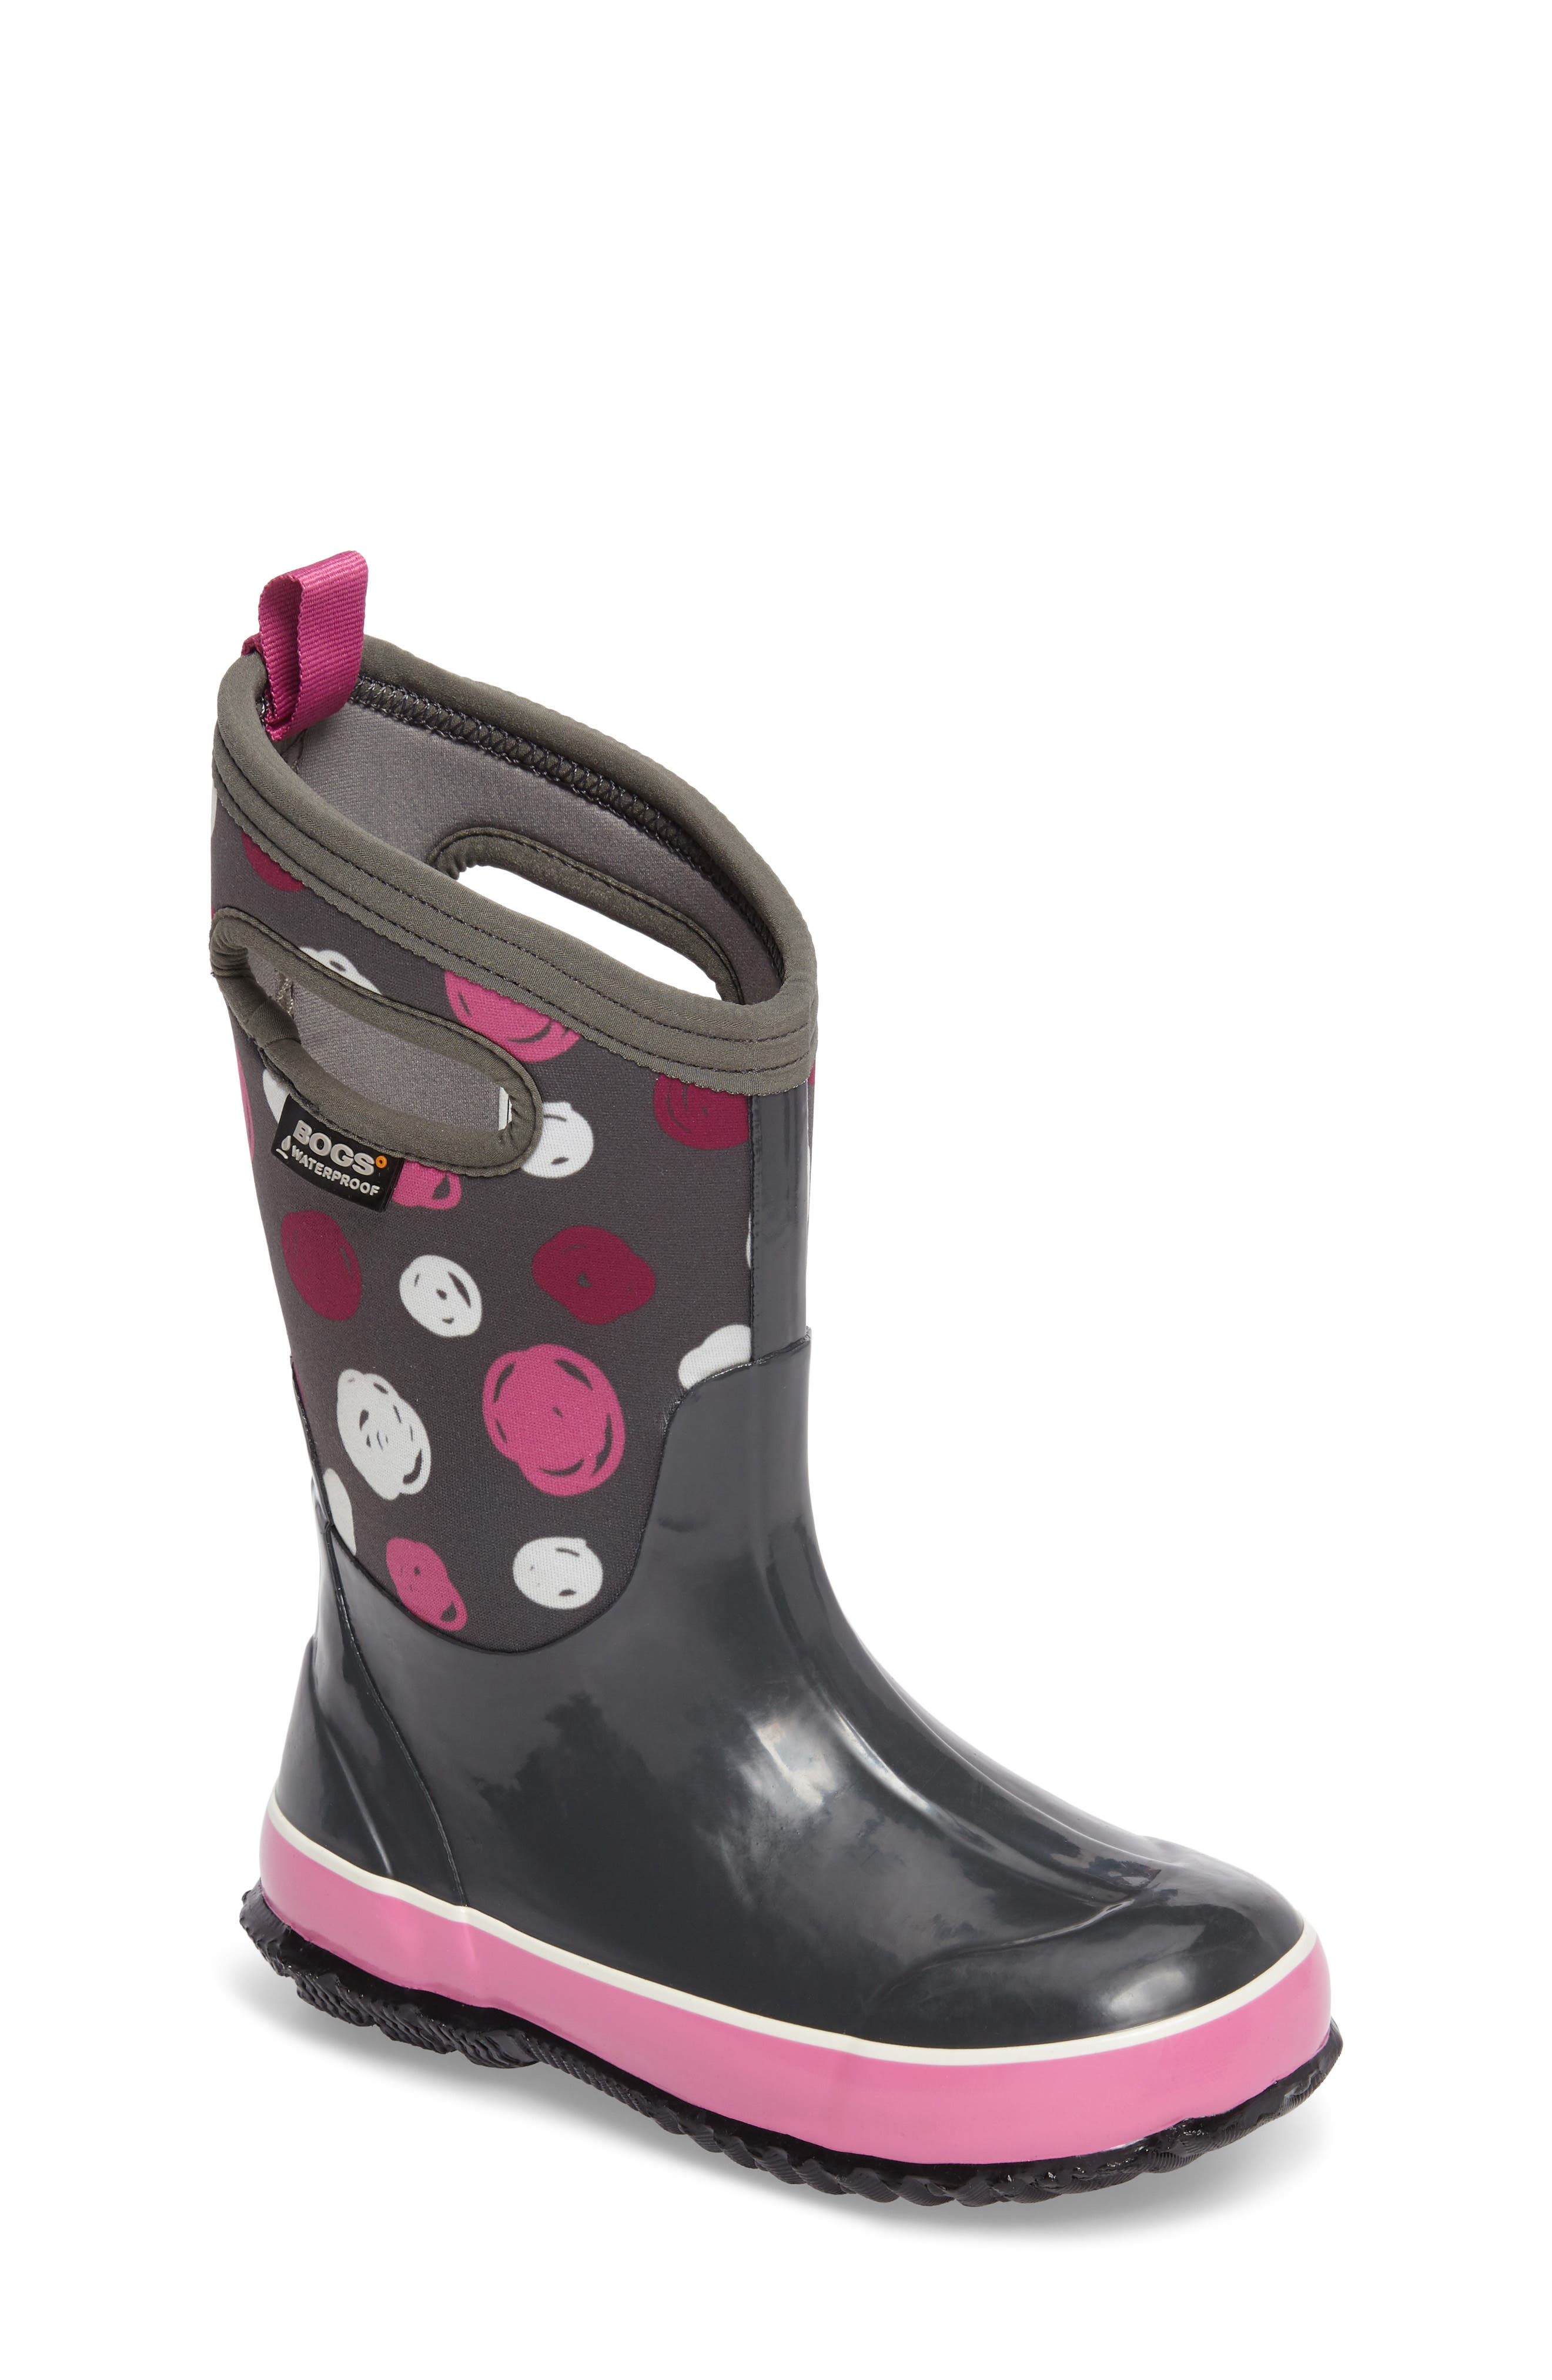 Bogs Classic Sketched Dots Insulated Waterproof Boot (Walker, Toddler, Little Kid & Big Kid)